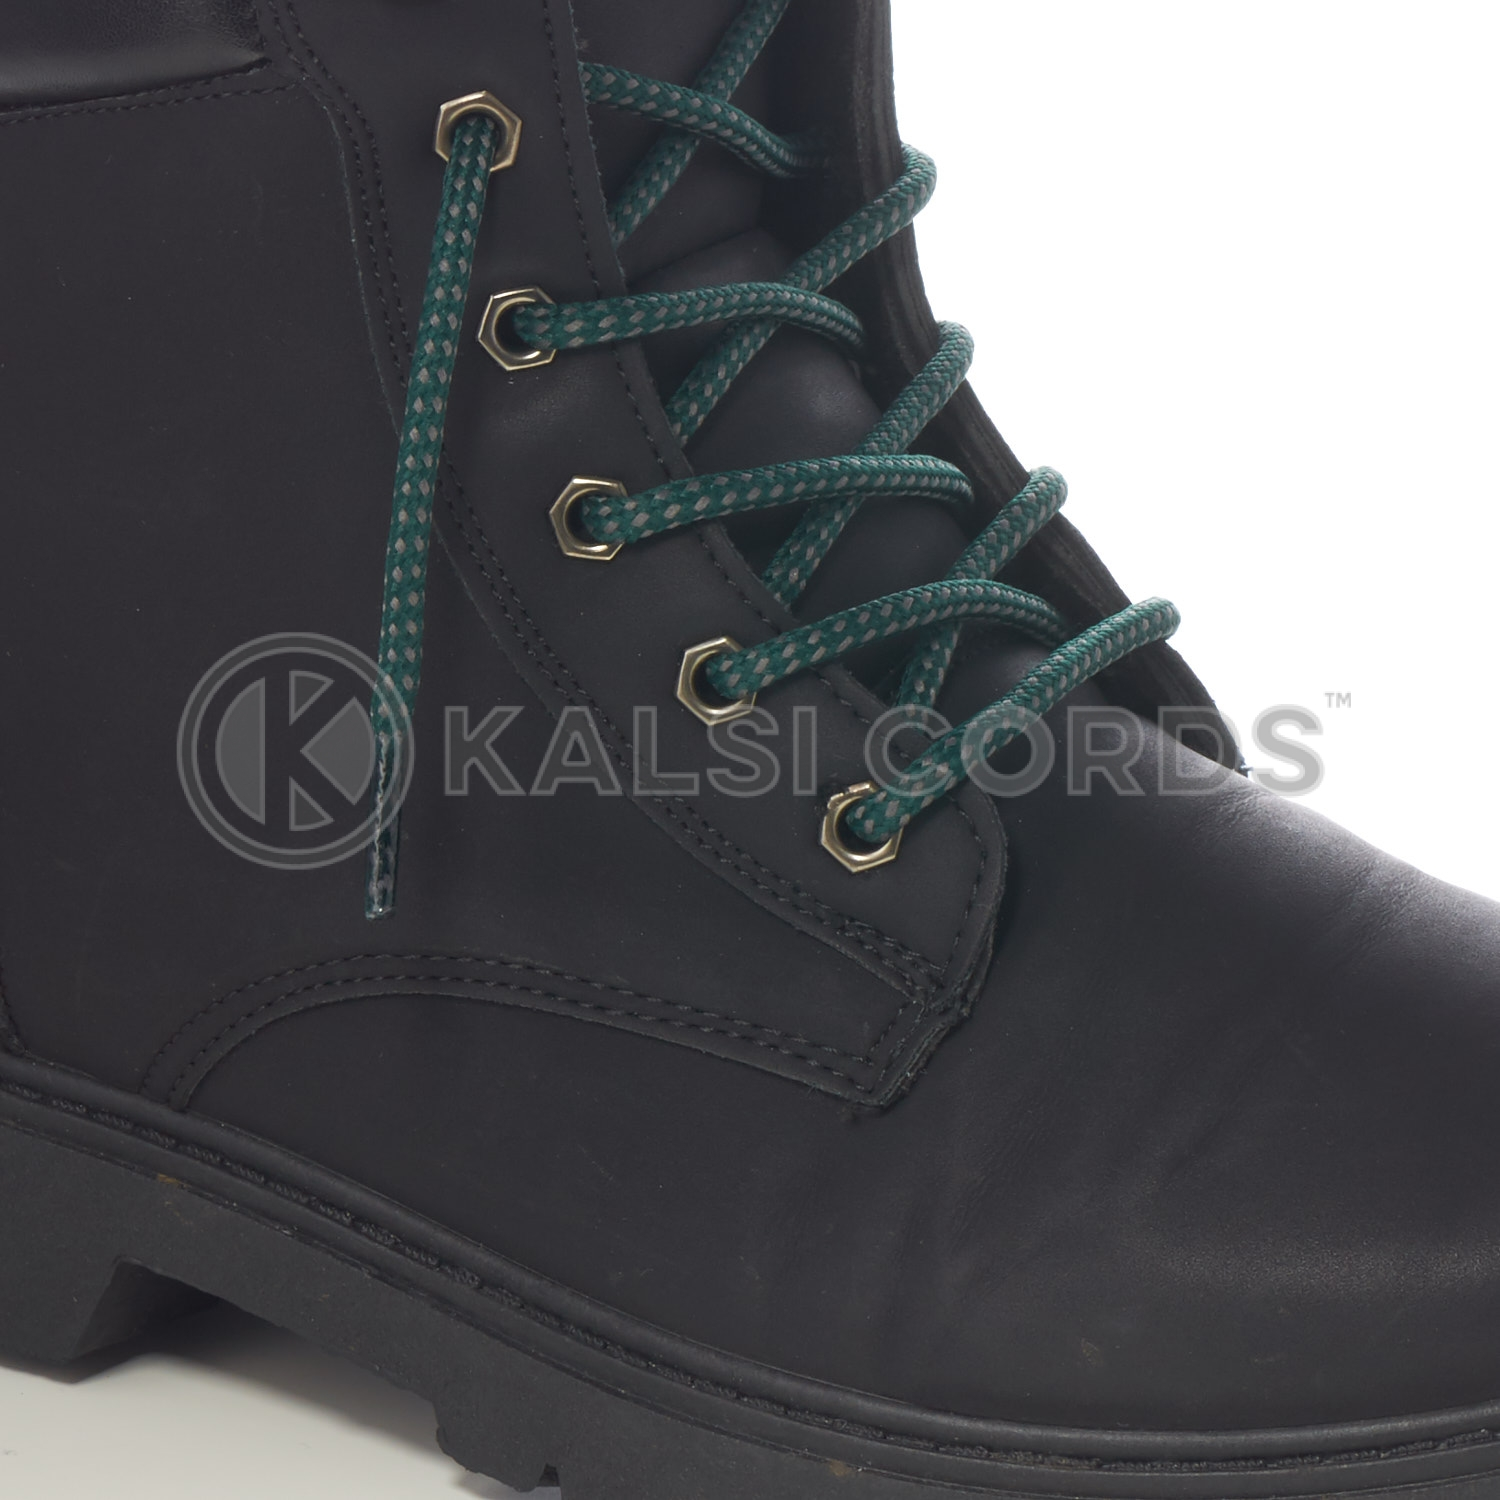 T621 5mm Round Cord Fleck Shoe Lace Cedar Green Grey Kids Trainers Adults Hiking Walking Boots Kalsi Cords